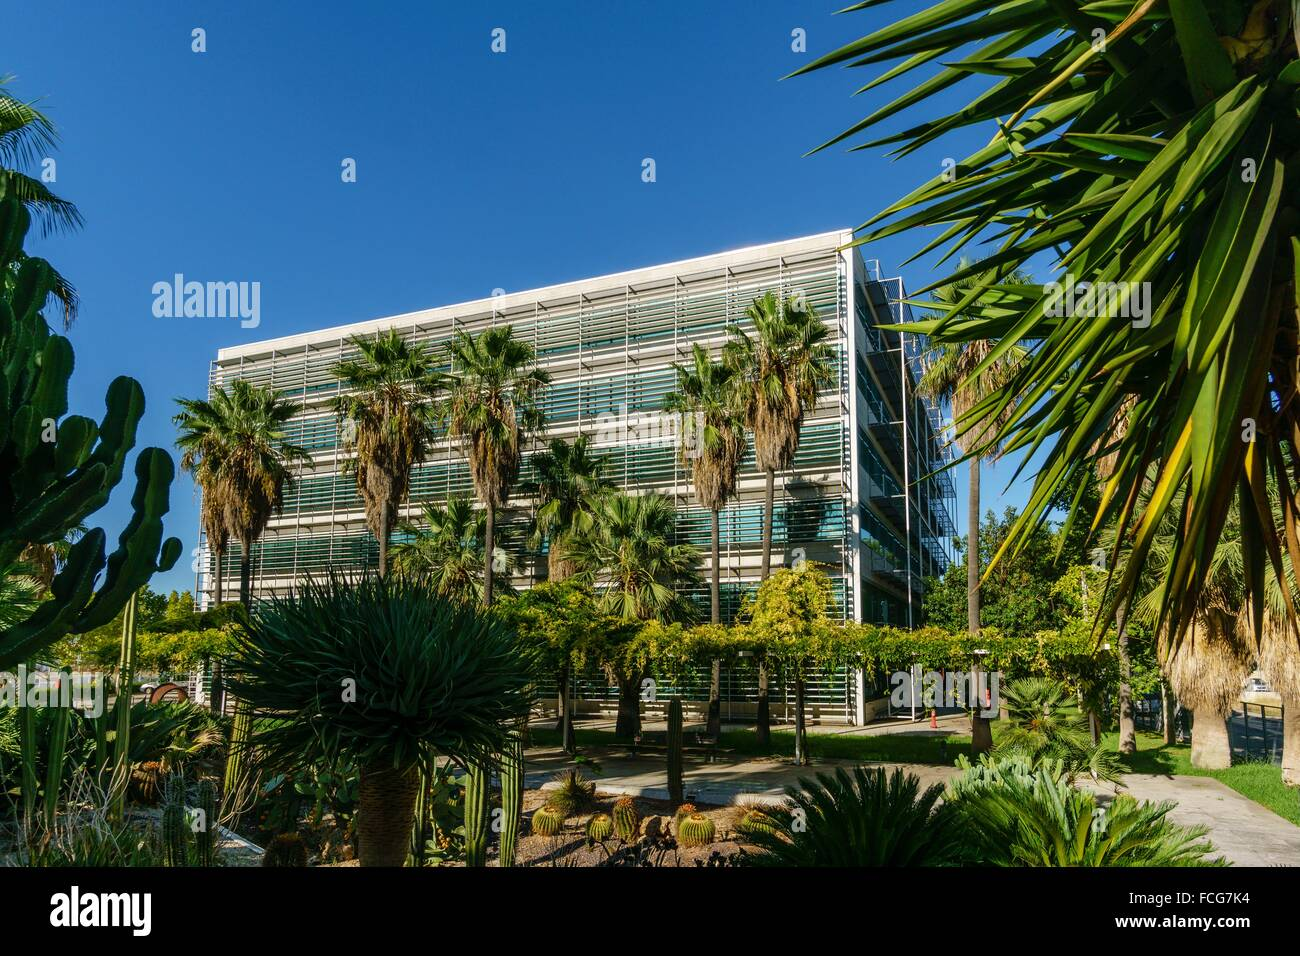 casa nostra stock photos casa nostra stock images alamy